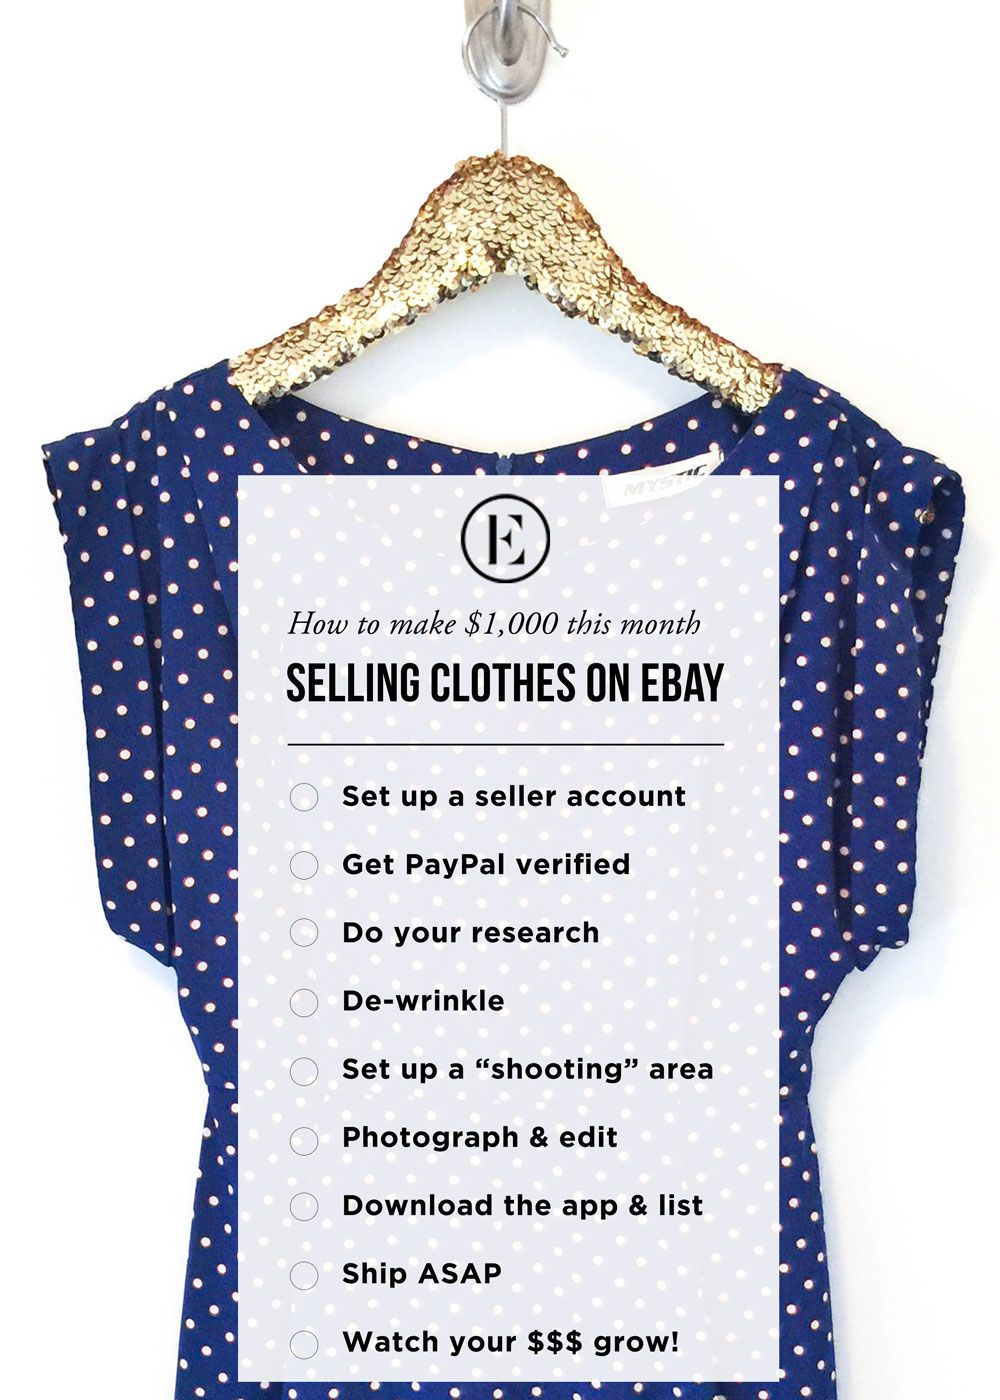 How to make 1000 this month selling your clothes on ebay